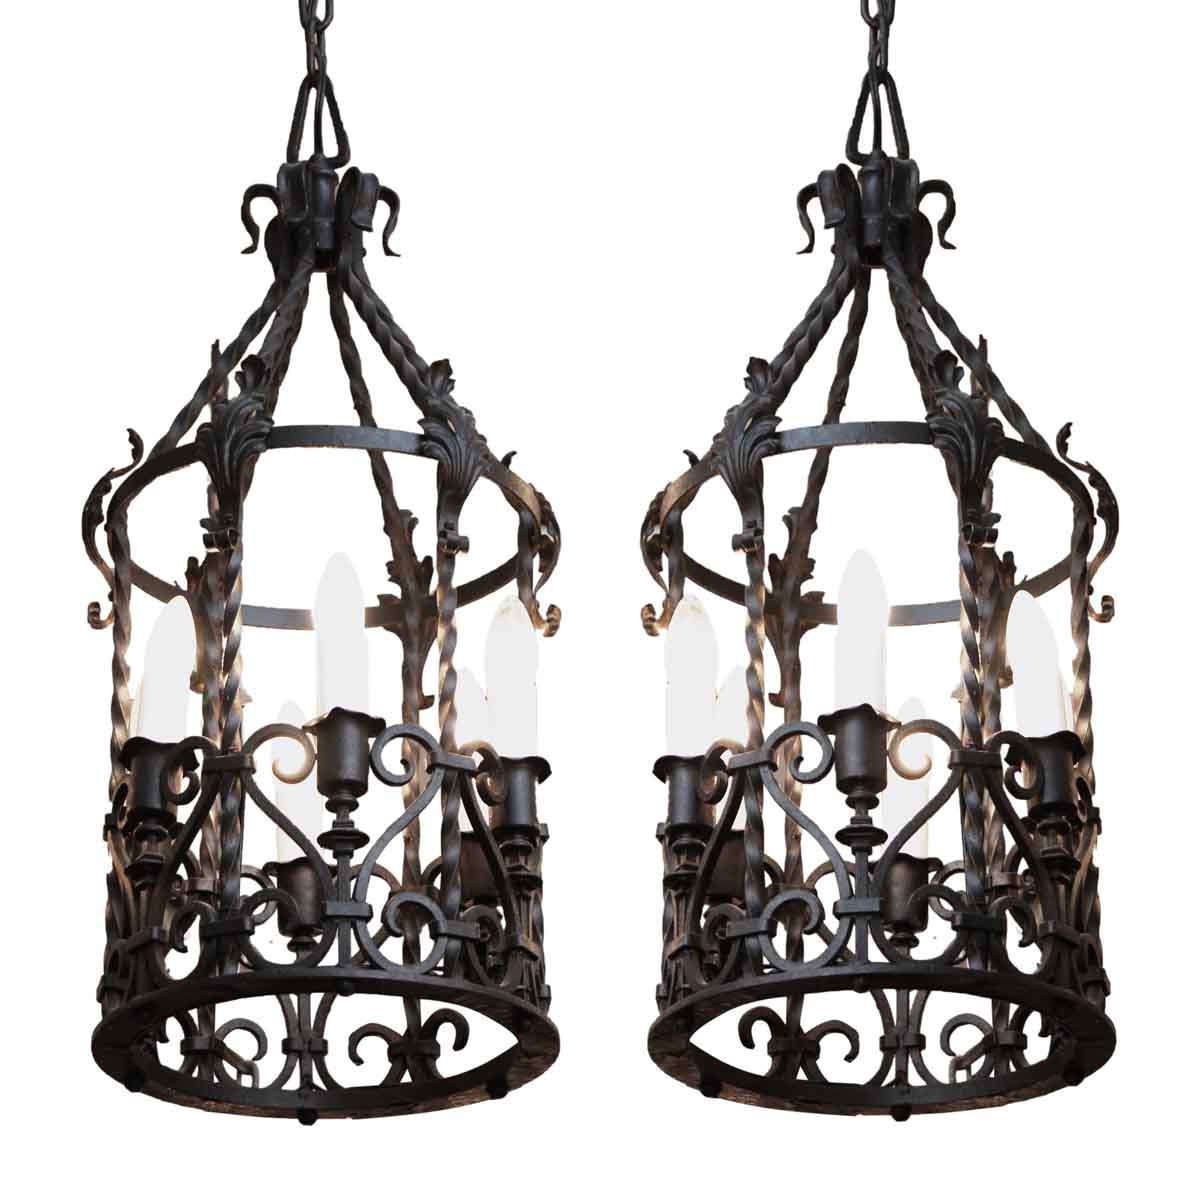 1920s french wrought iron lanterns with bronze details olde good 1920s french wrought iron lanterns with bronze details aloadofball Image collections